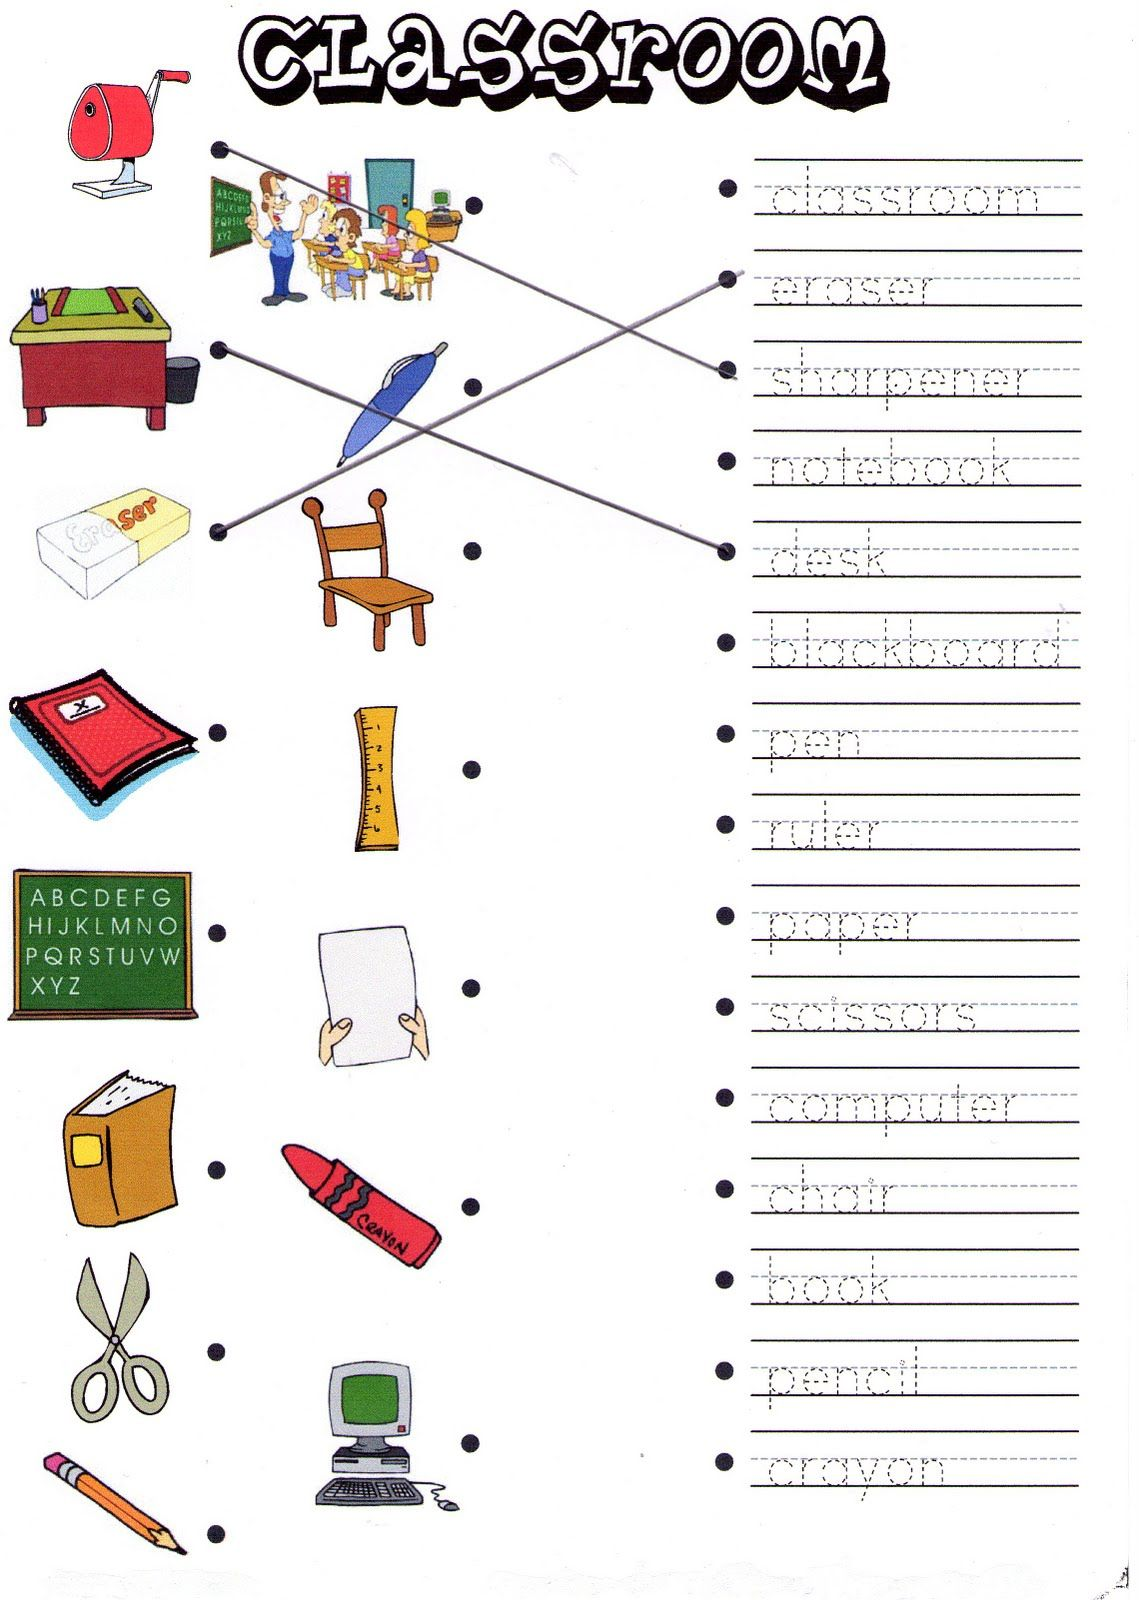 parts of the classroom vocabulary Google Search – Classroom Objects in Spanish Worksheet